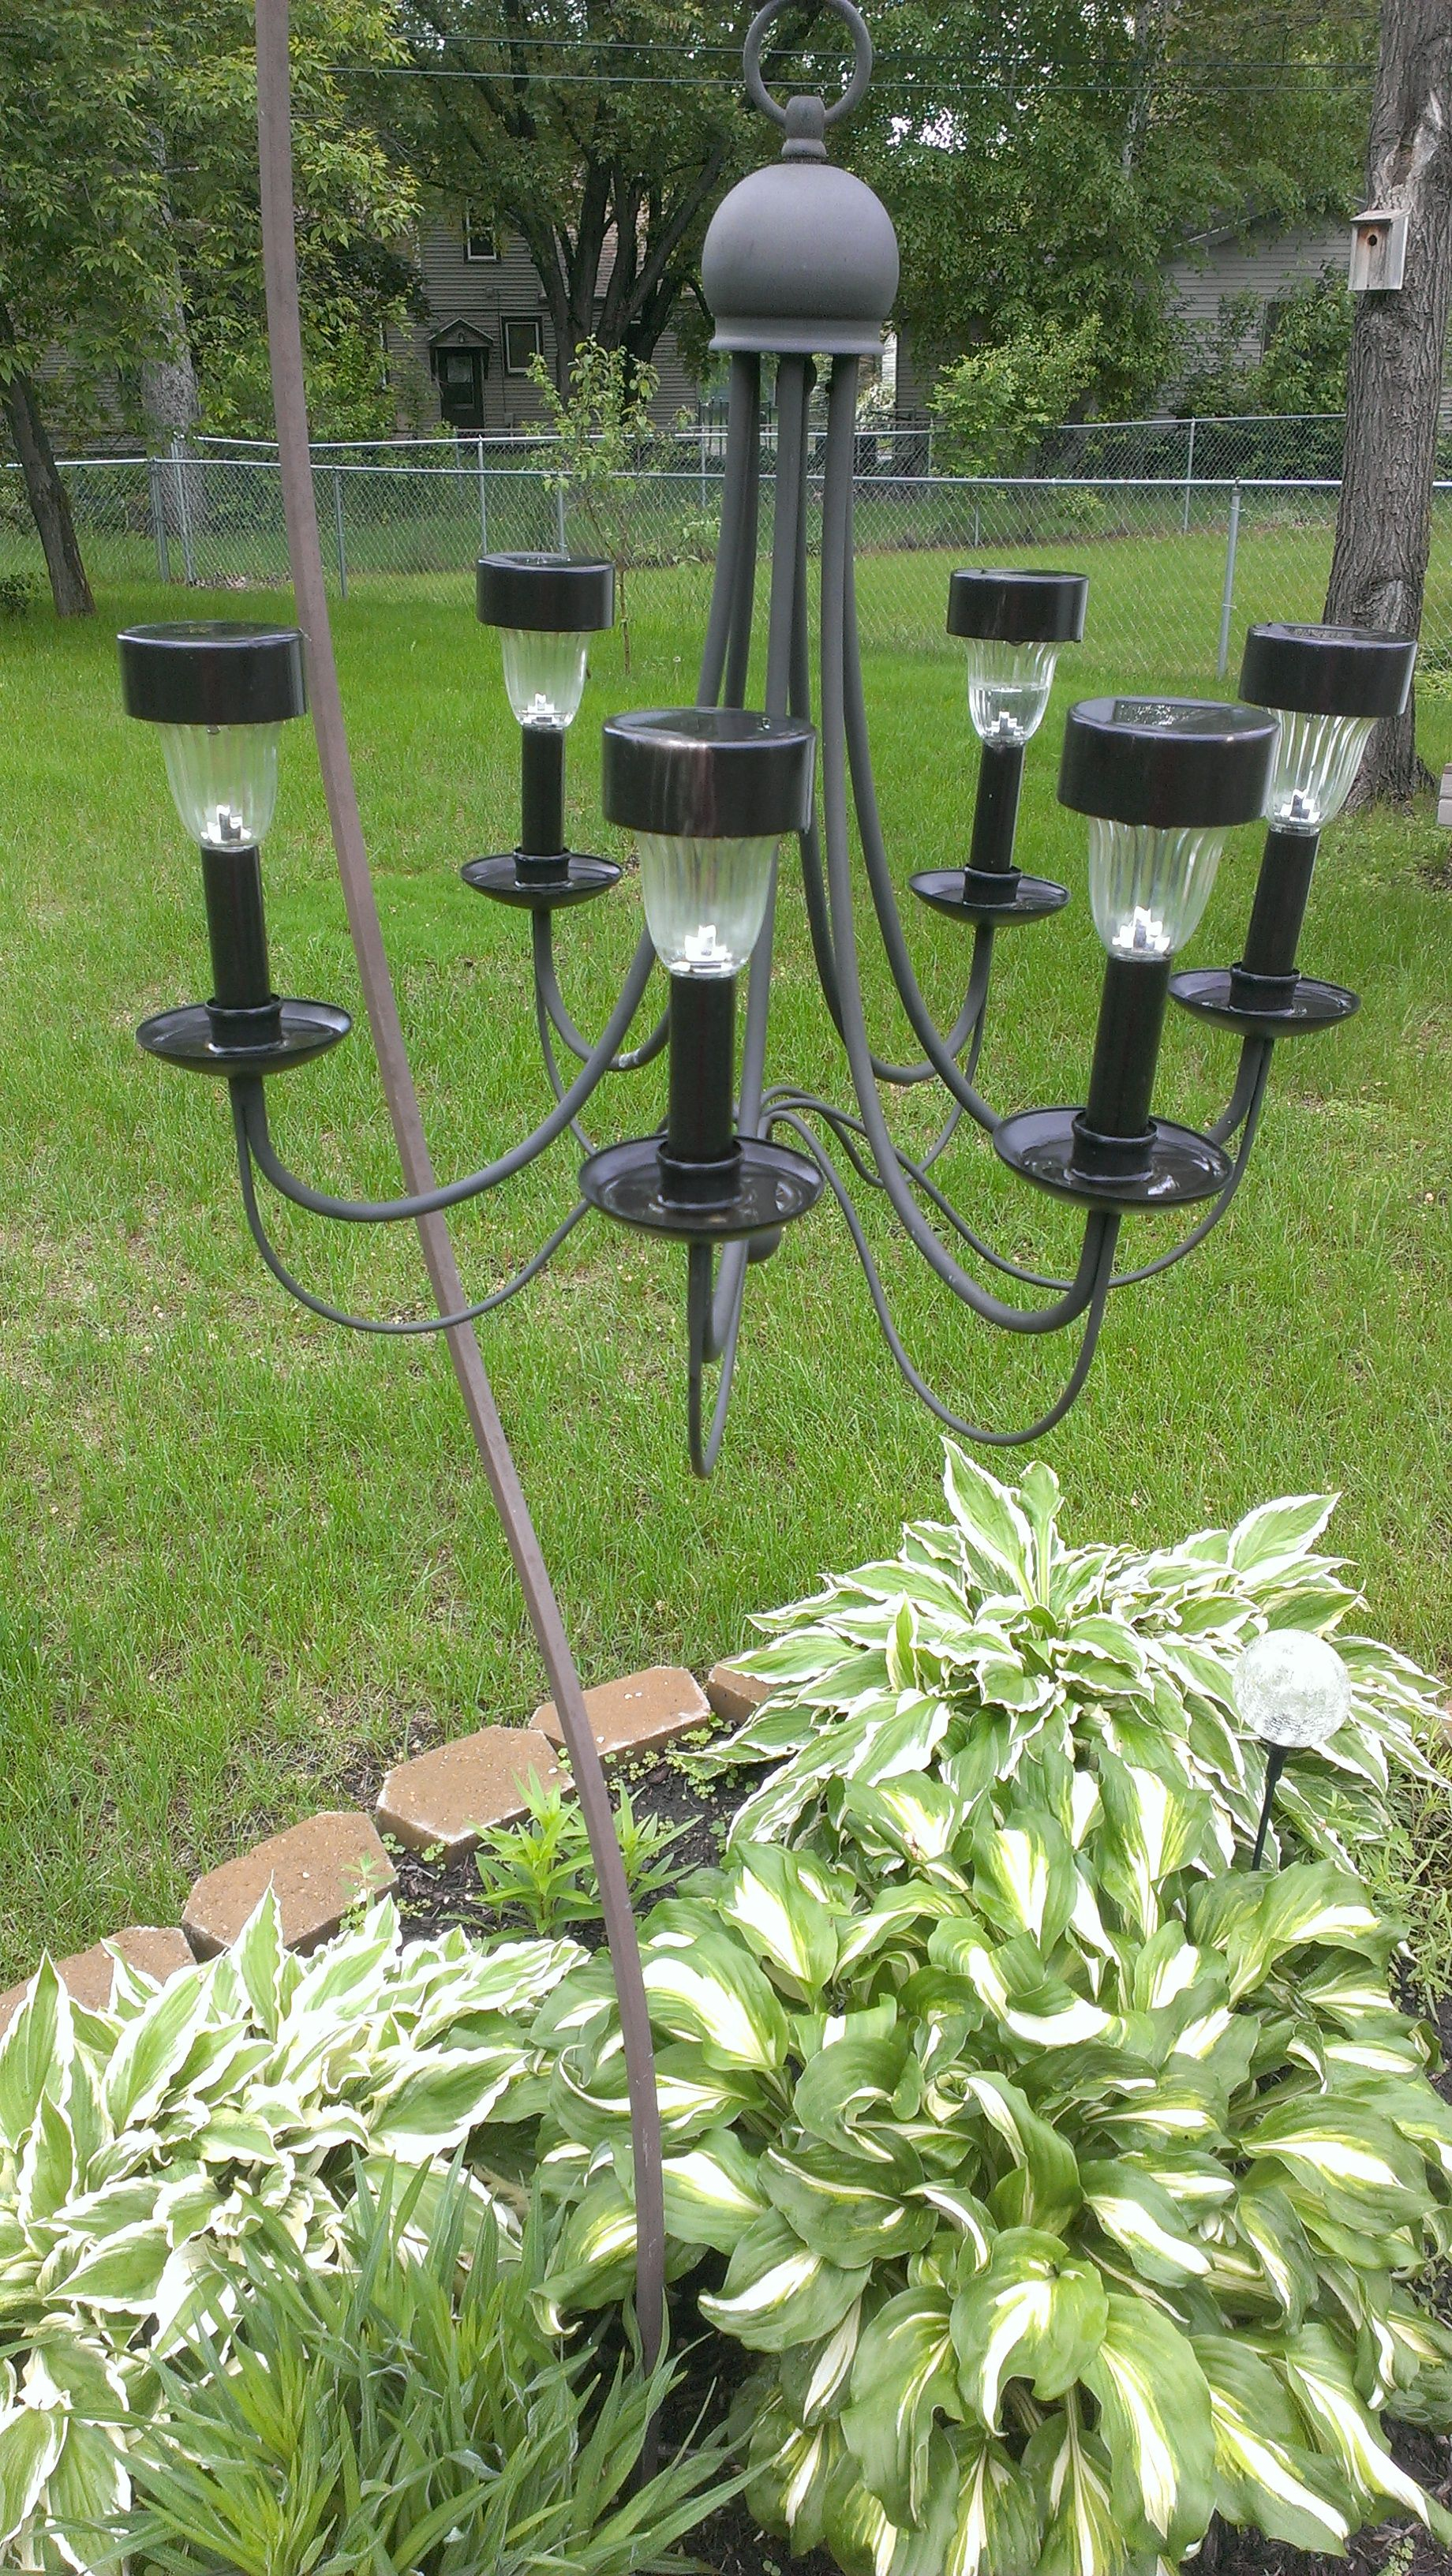 Solarlicht Garten I Repurposed A Chandelier I Found At A Thrift Shop Into A